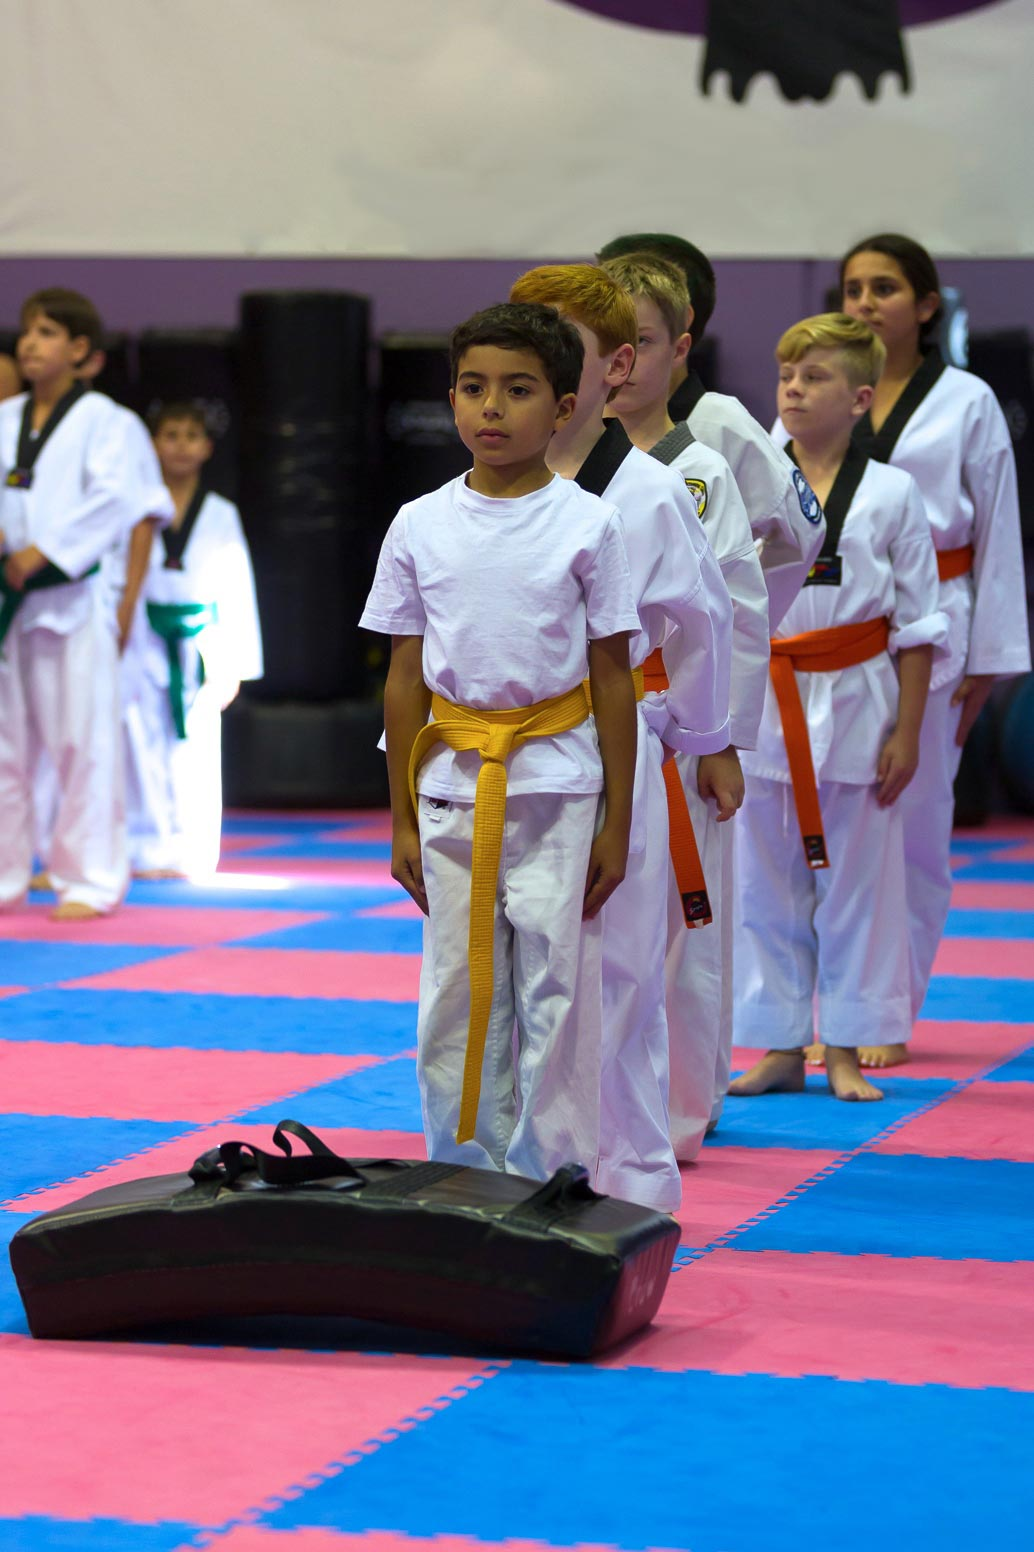 Attention, Focus and discipline are key elements in every Junior class